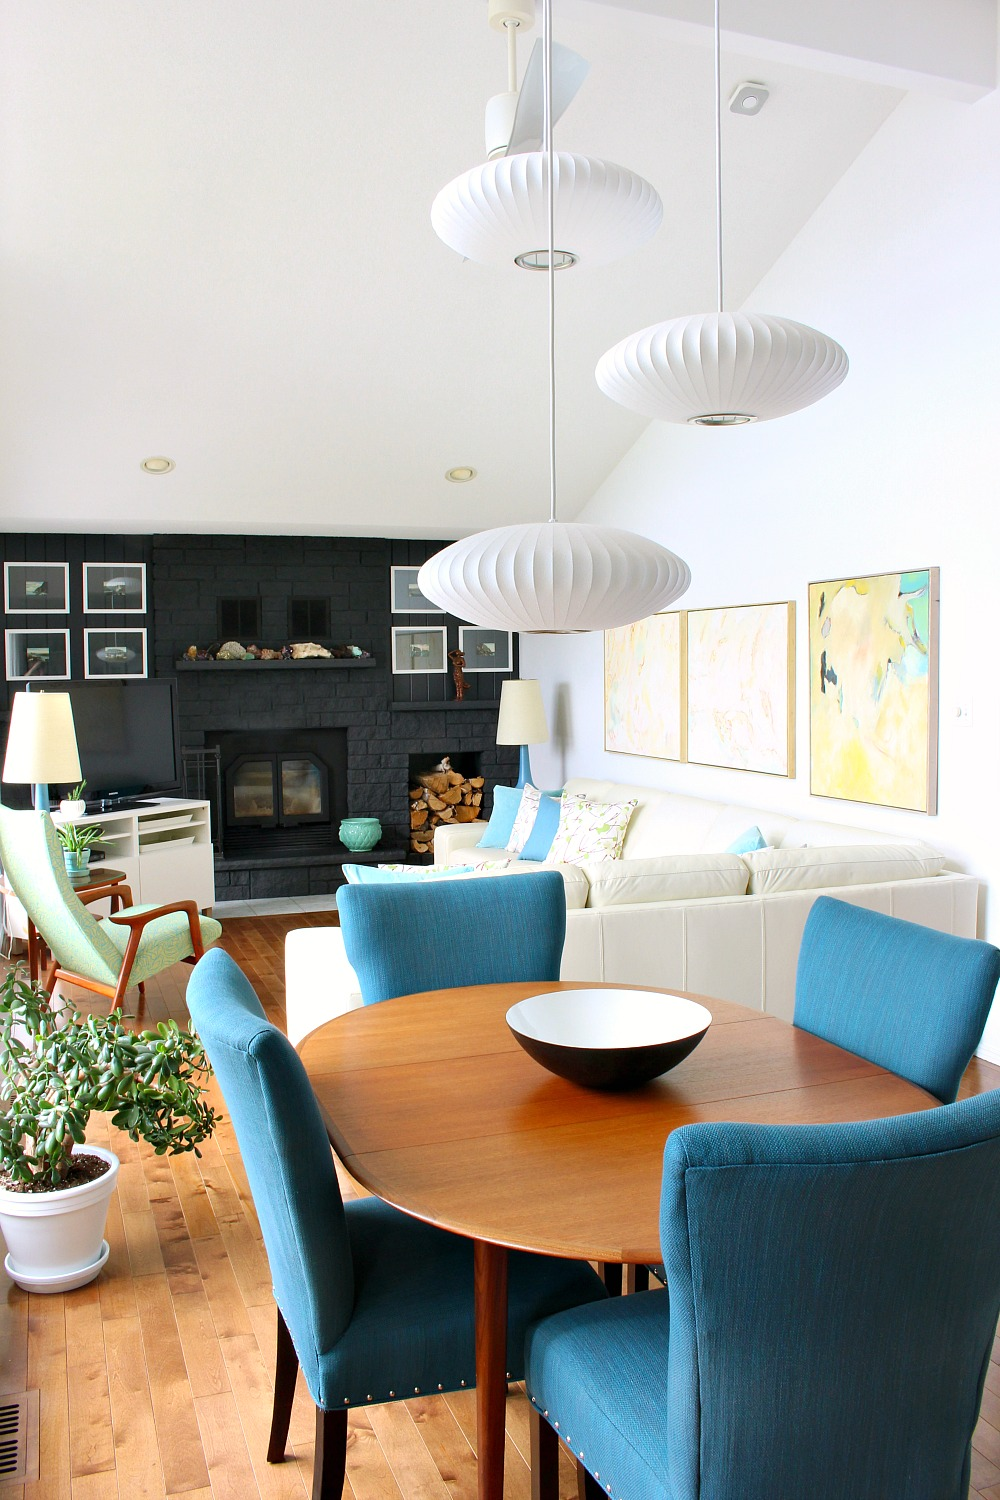 Modern Canadian Lake House Living Room in Blue, Turquoise and Mint Colour Palette